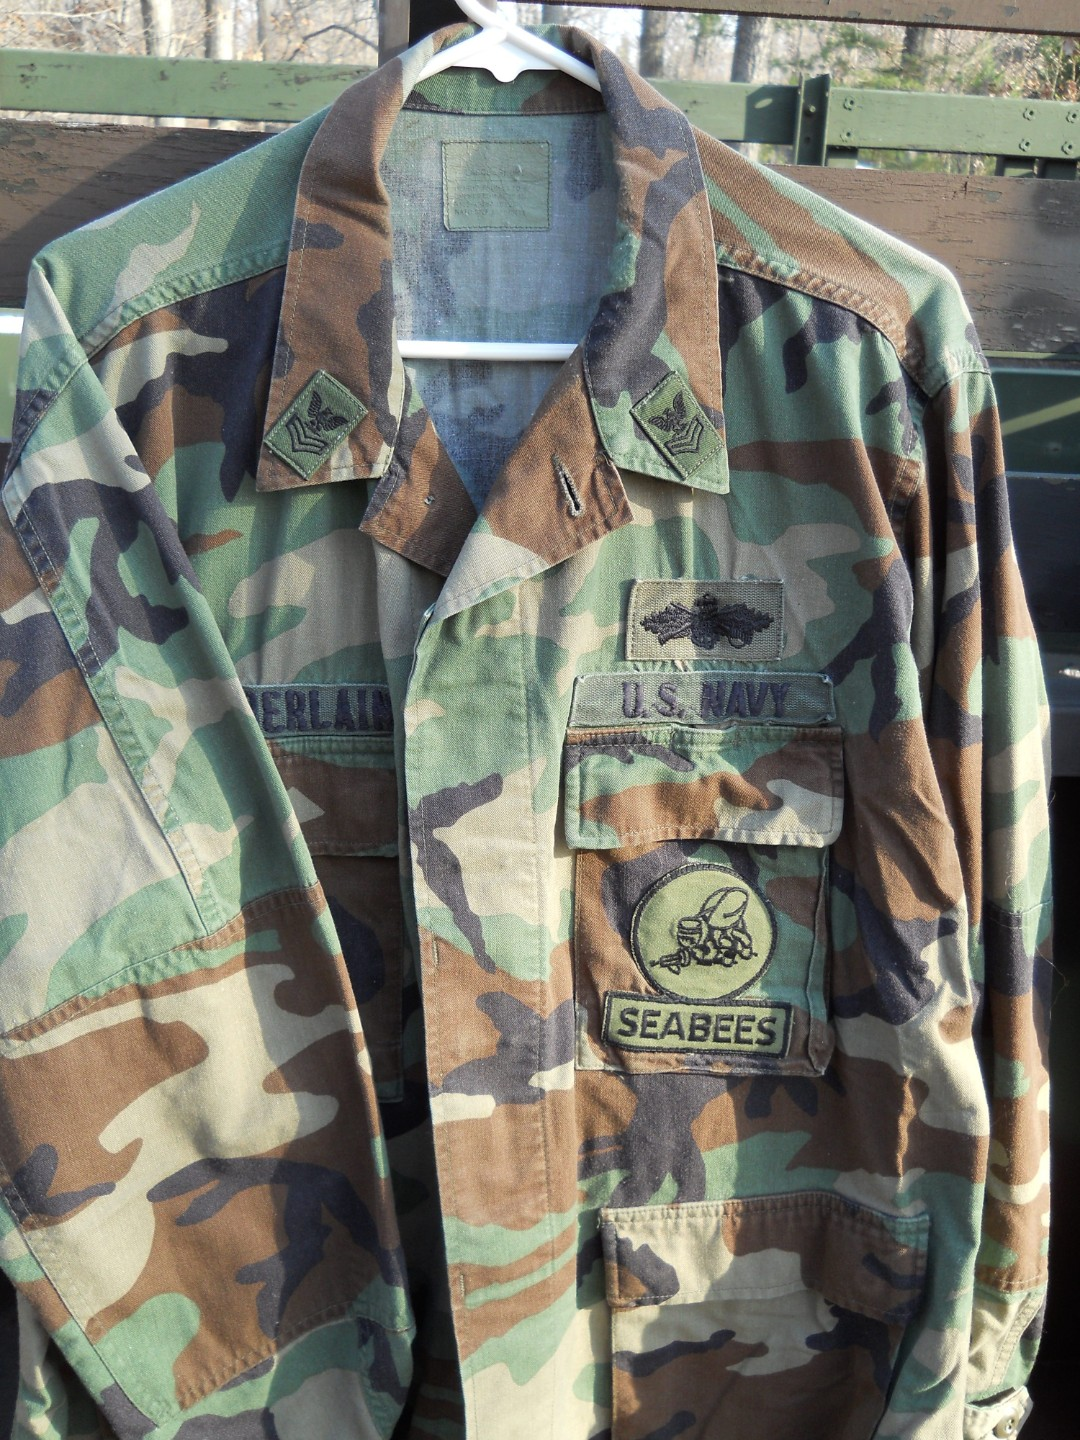 ASSORTED MILITARY UNIFORMS, ARMY, NAVY BDU'S JACKETS $10 EA